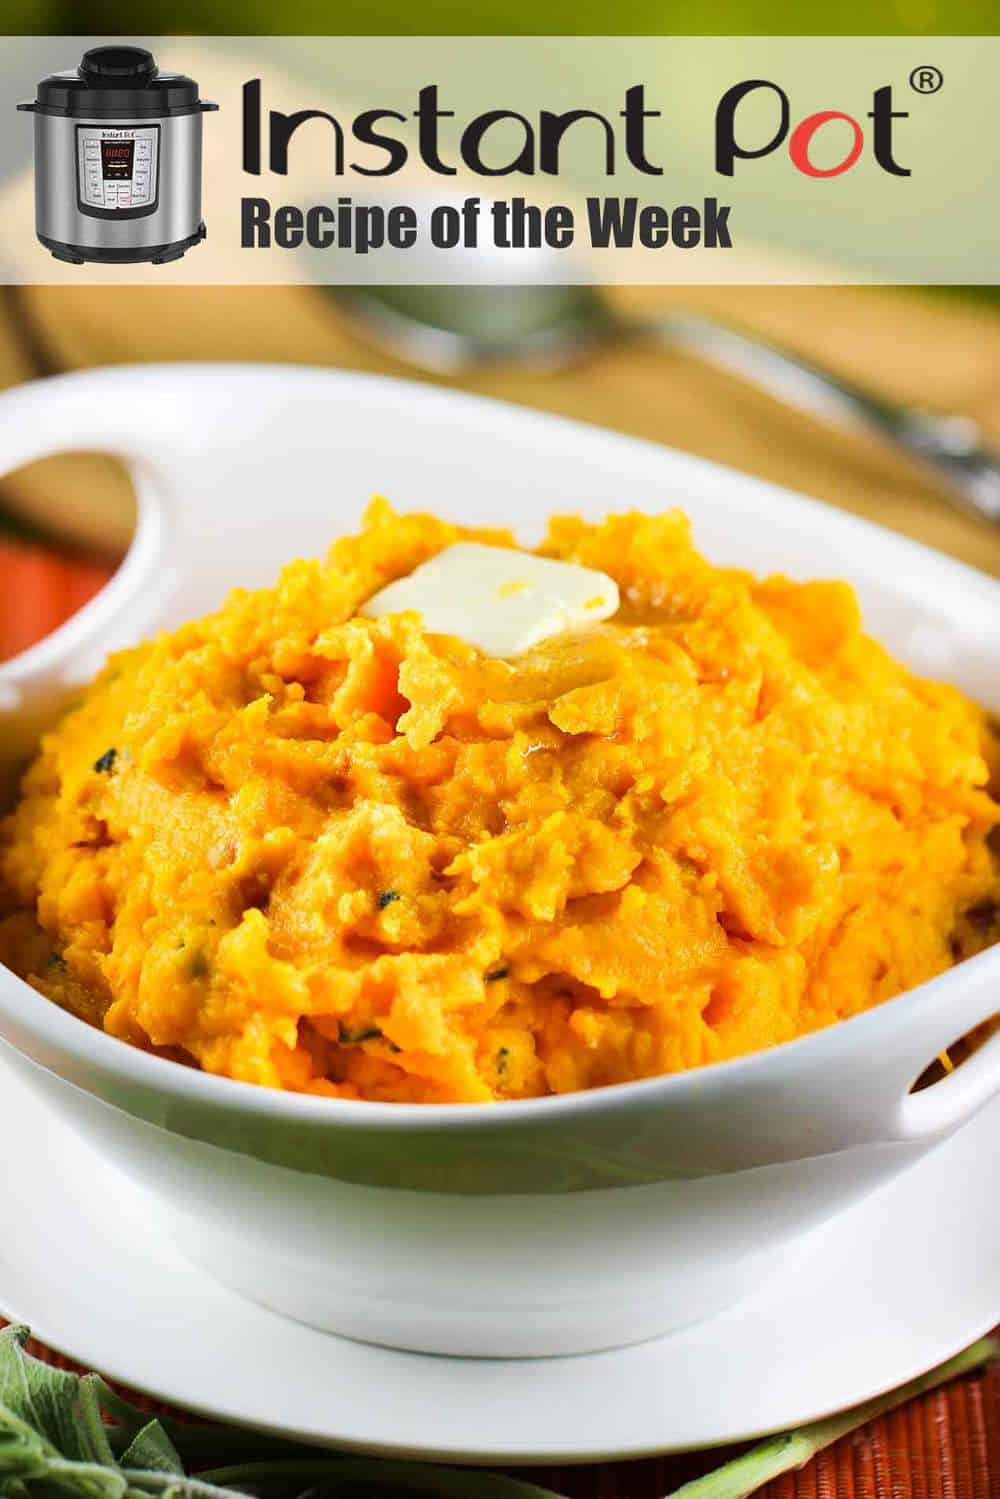 Instant Pot Mashed Butternut Squash with Pancetta and Sage